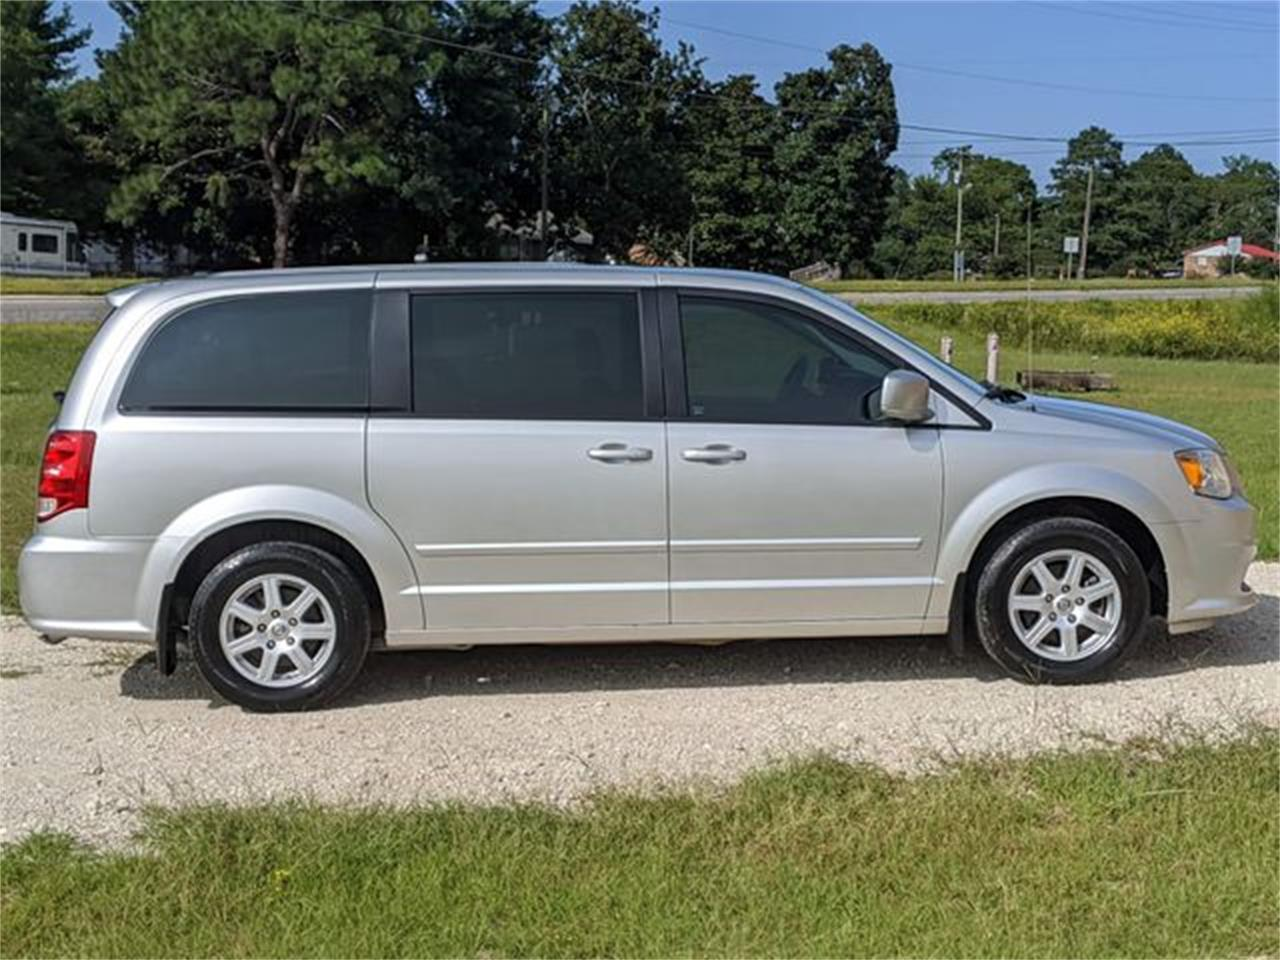 2013 Dodge Grand Caravan (CC-1388906) for sale in Hope Mills, North Carolina